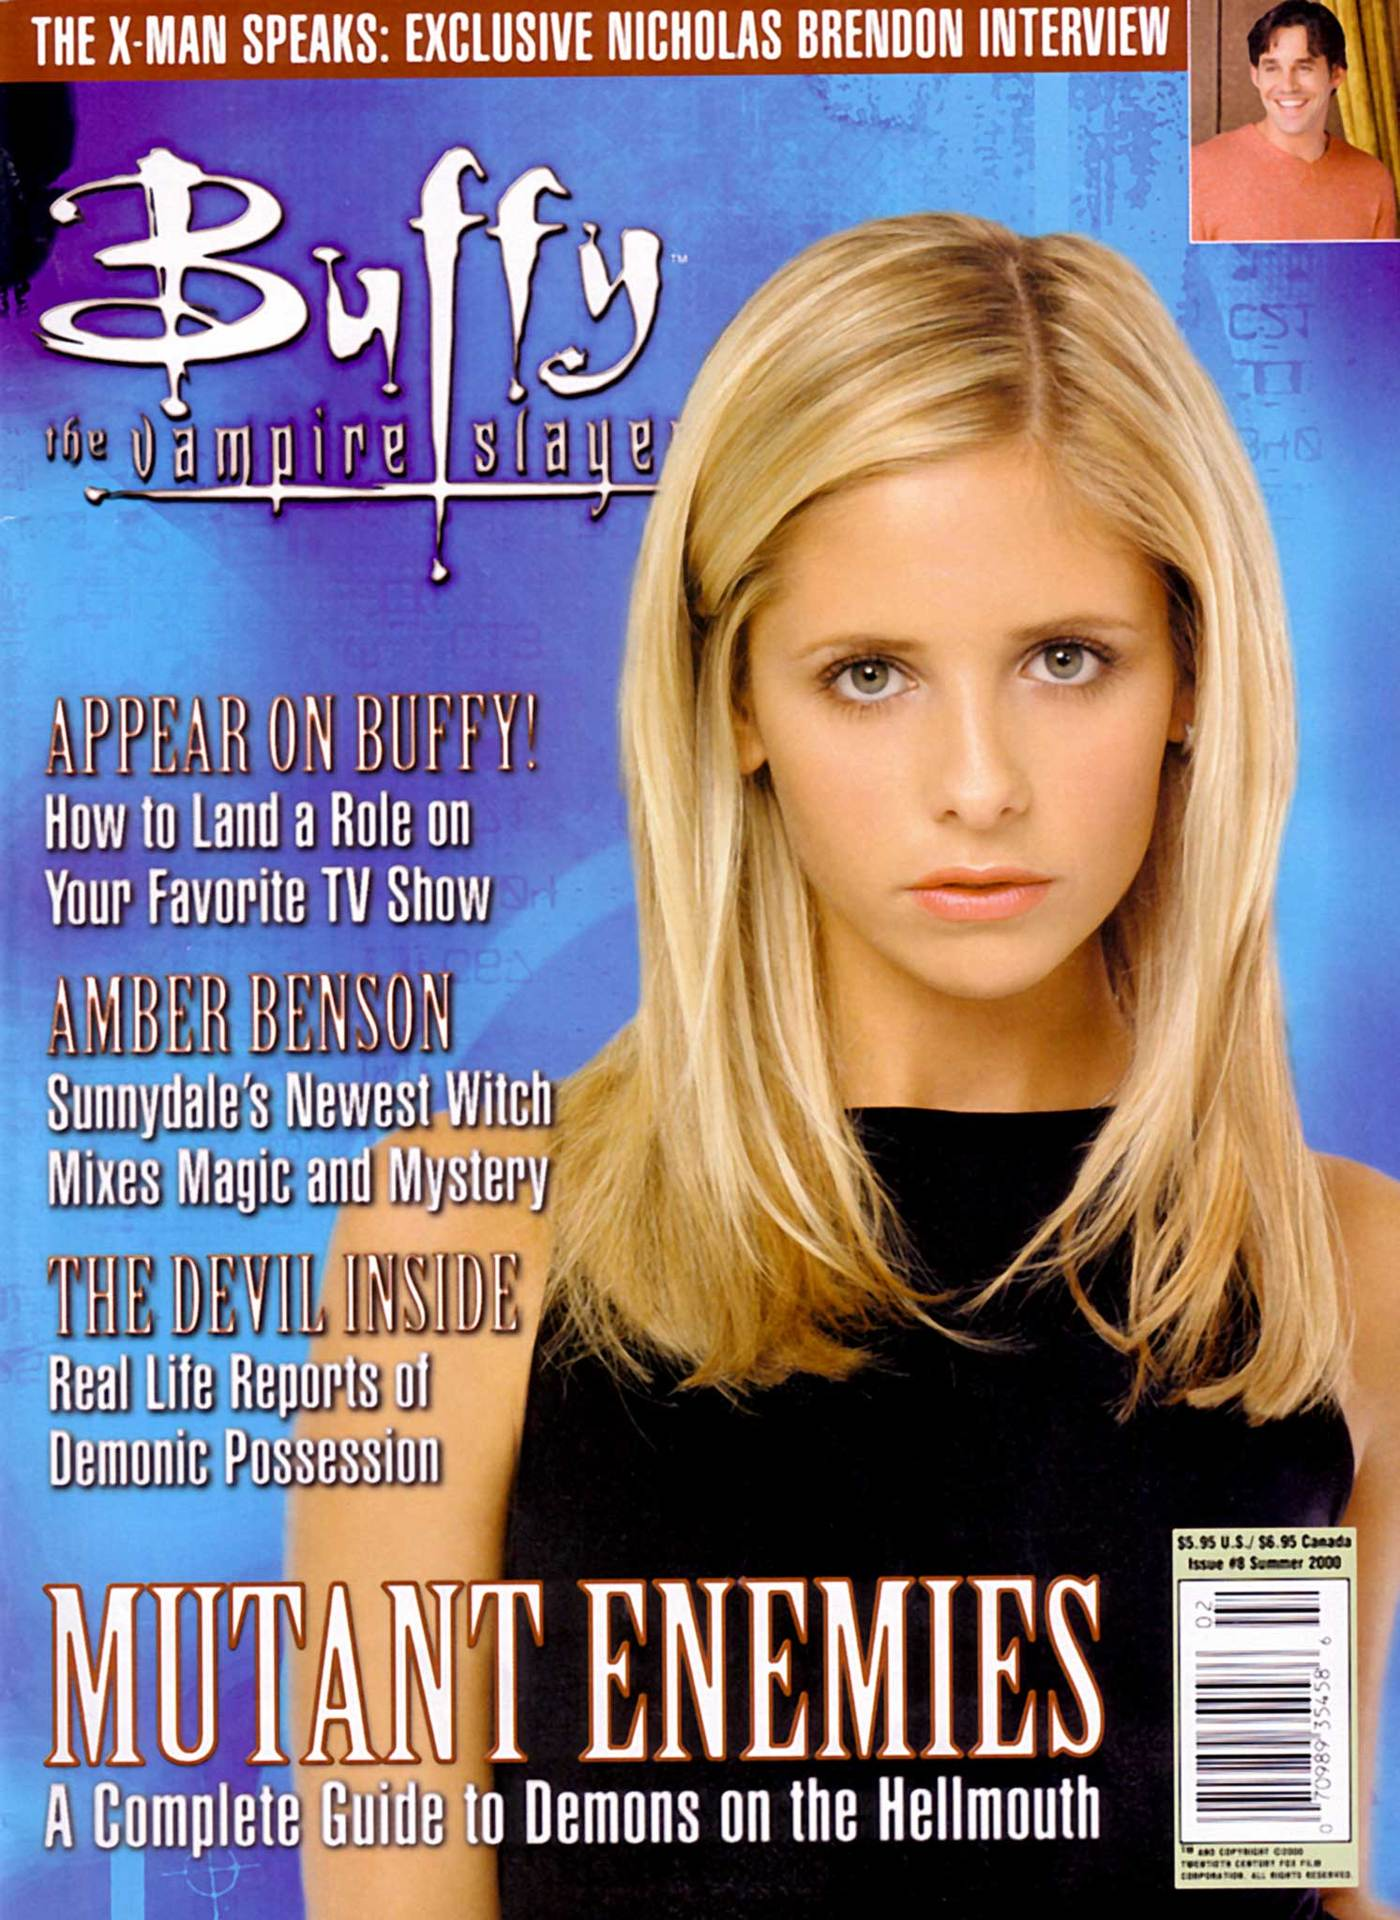 Issue #8, Summer 2000